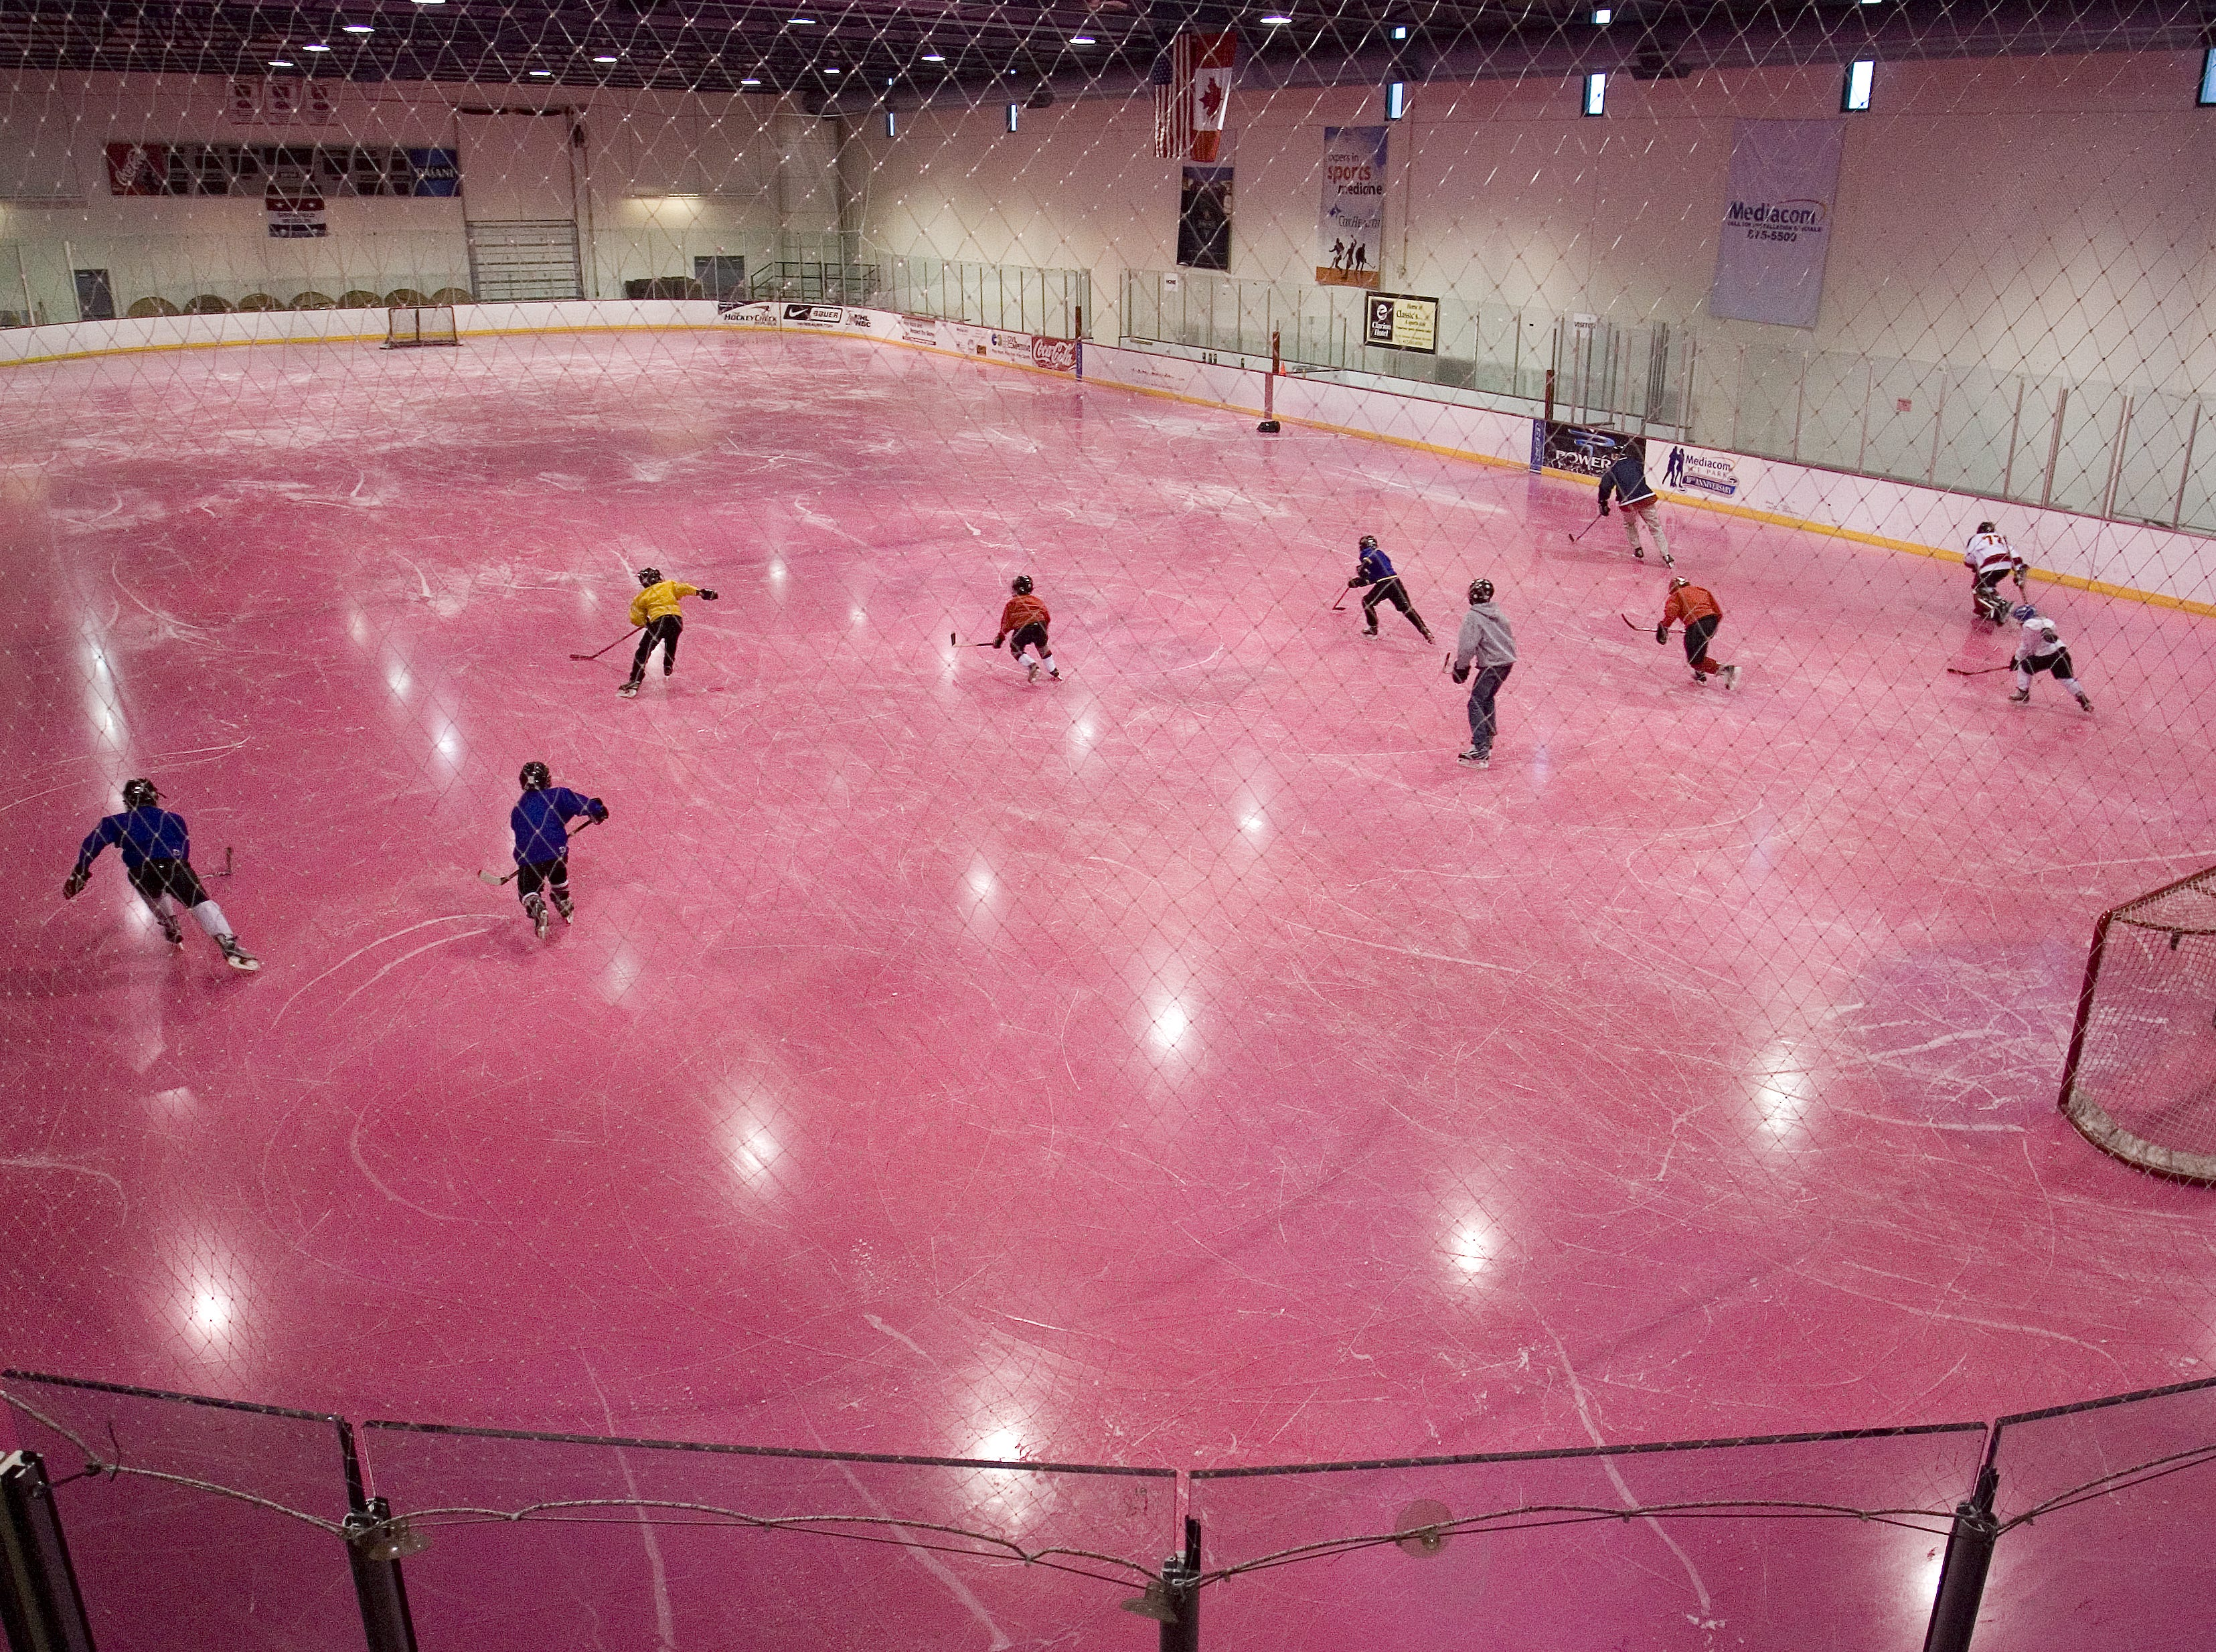 A youth hockey team practice on one of the ice rinks at the Mediacom Ice Park which has been painted pink for breast cancer awareness month.  The ice is made pink by scraping off about an inch of ice with a Zamboni, then hand painting the pink layer, ice is then added back over the top of it.